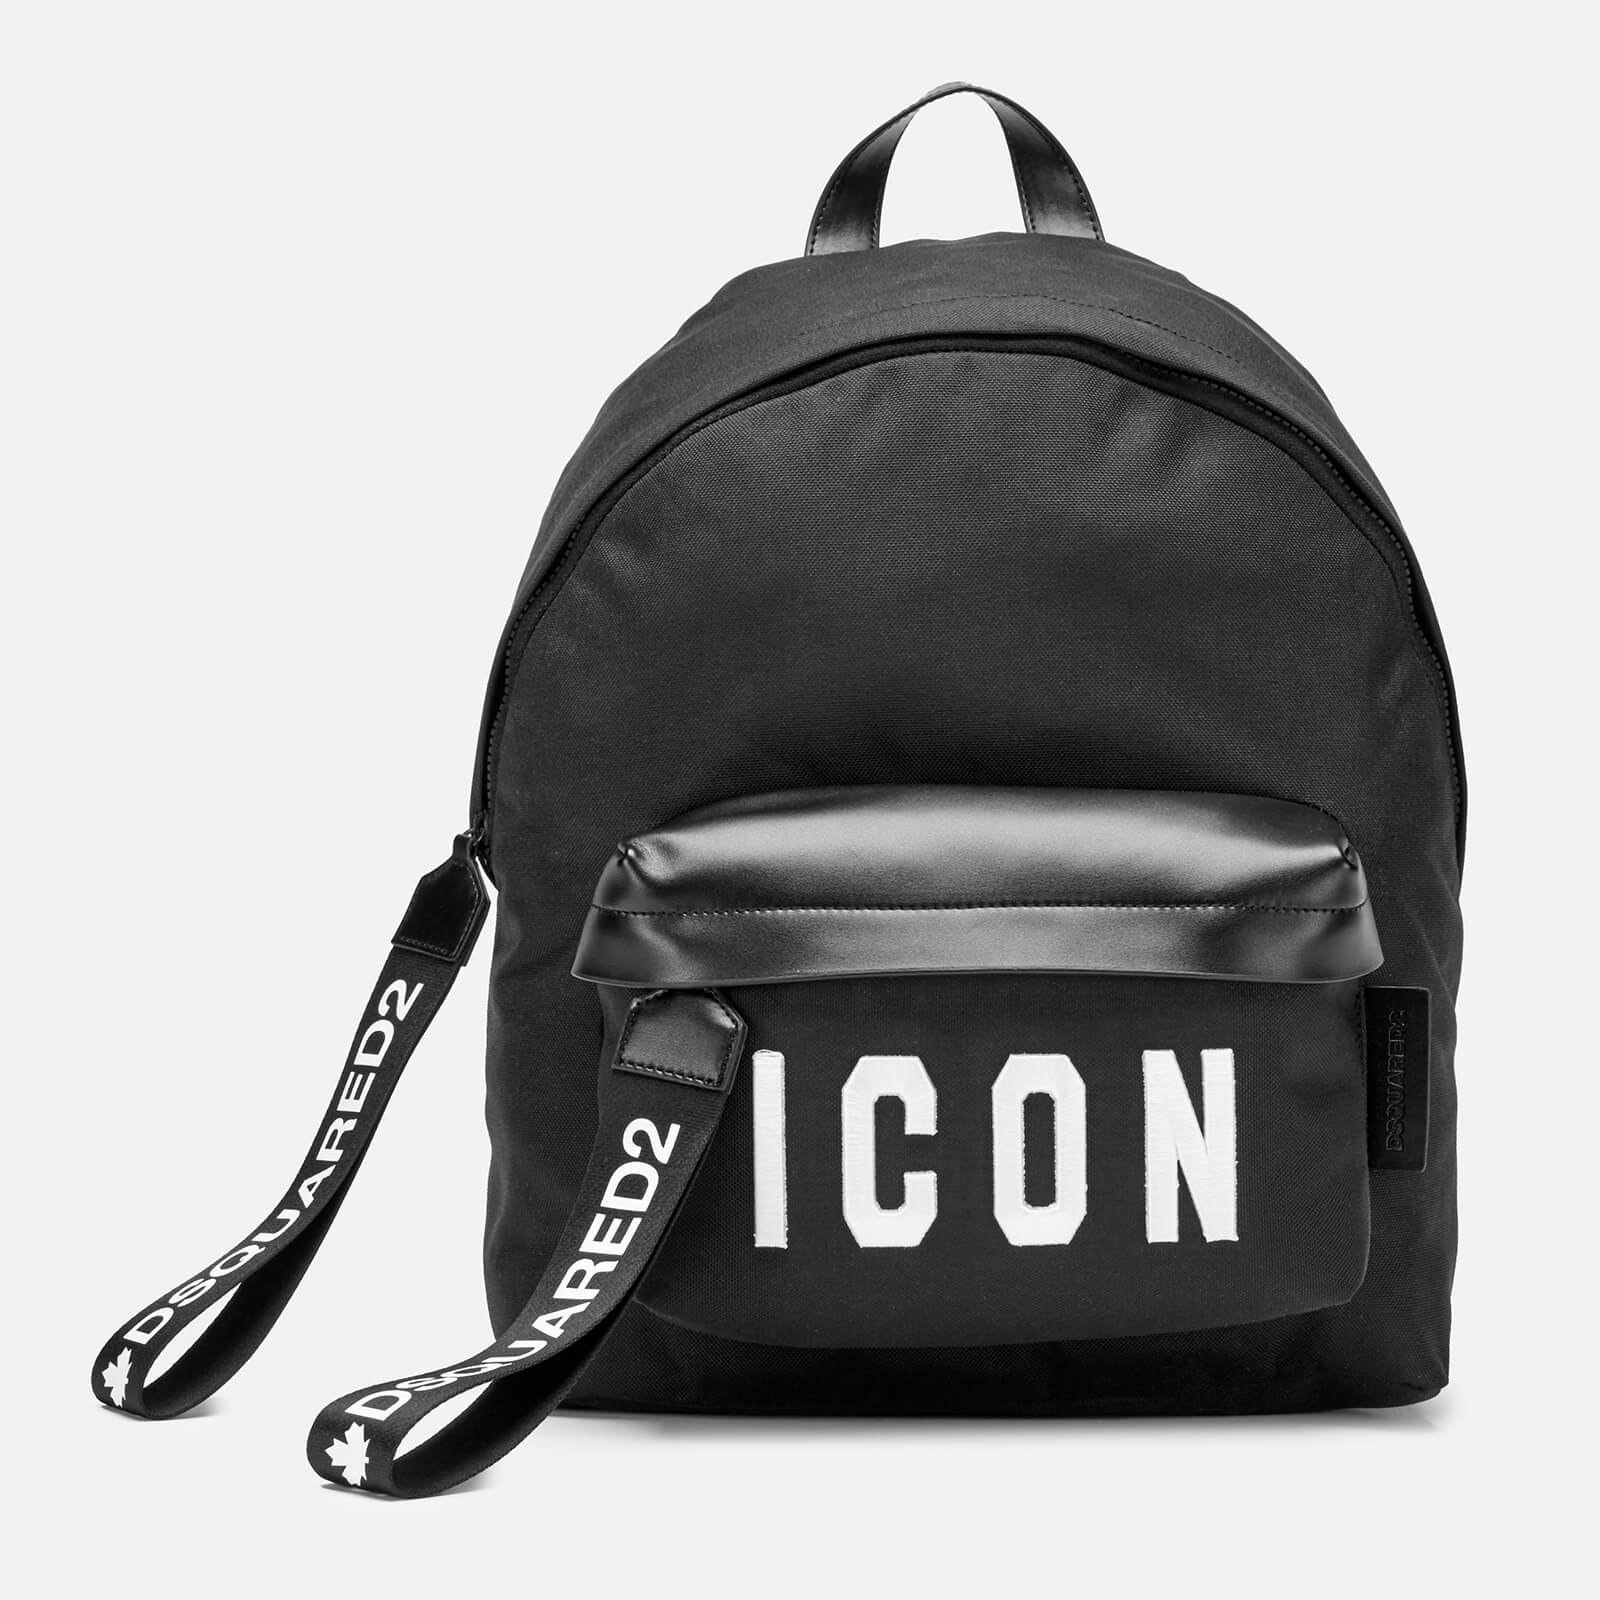 1ab97f7b69c6 Dsquared2 Men s Icon Backpack - Black White - Free UK Delivery over £50